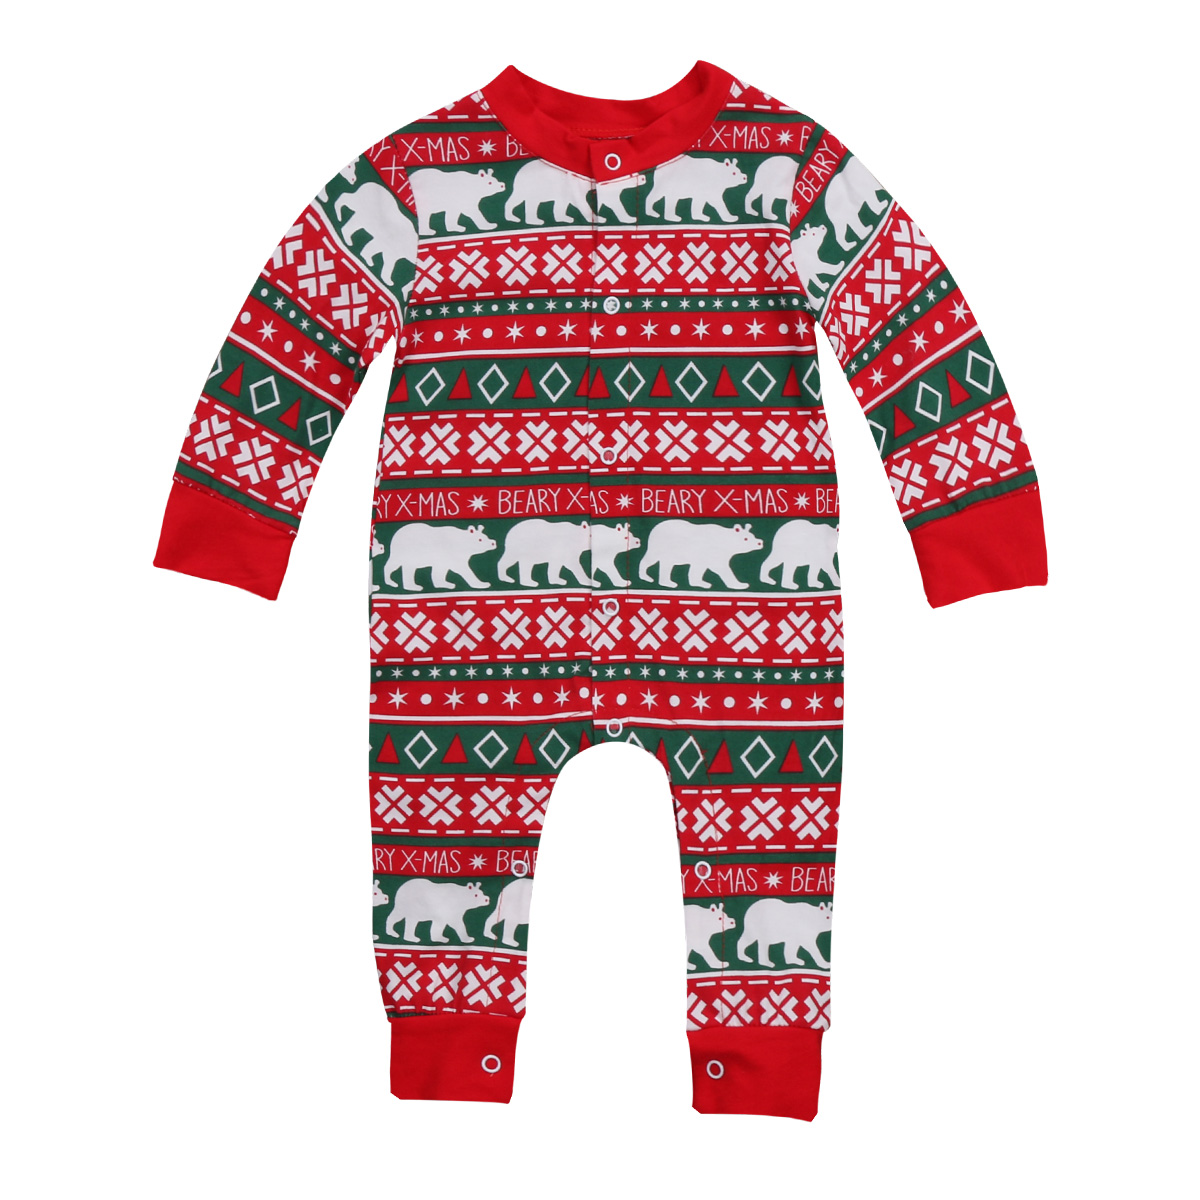 Newborn Baby Boy Girl Clothing Xmas Romper Jumpsuit Long Sleeve Cotton Cute Infant Winter Clothes Baby Girls Outfit winter baby rompers organic cotton baby hooded snowsuit jumpsuit long sleeve thick warm baby girls boy romper newborn clothing